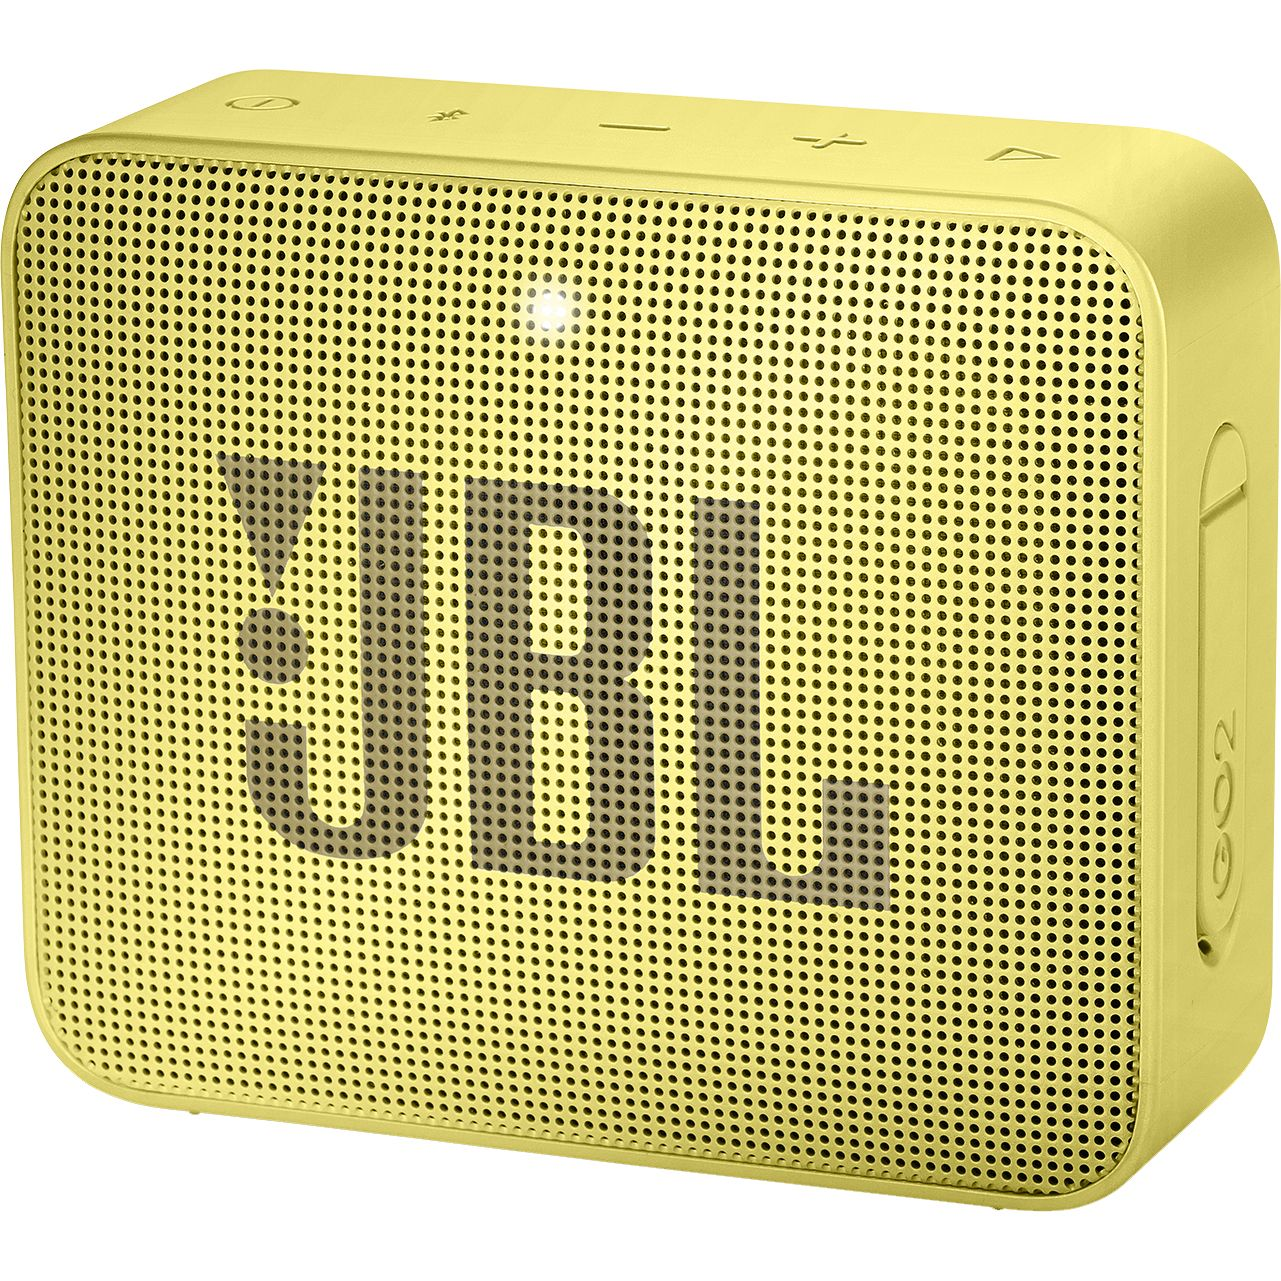 Boxa portabila JBL Go 2, Wireless, Bluetooth, IPX7 Waterproof, Lemonade Yellow